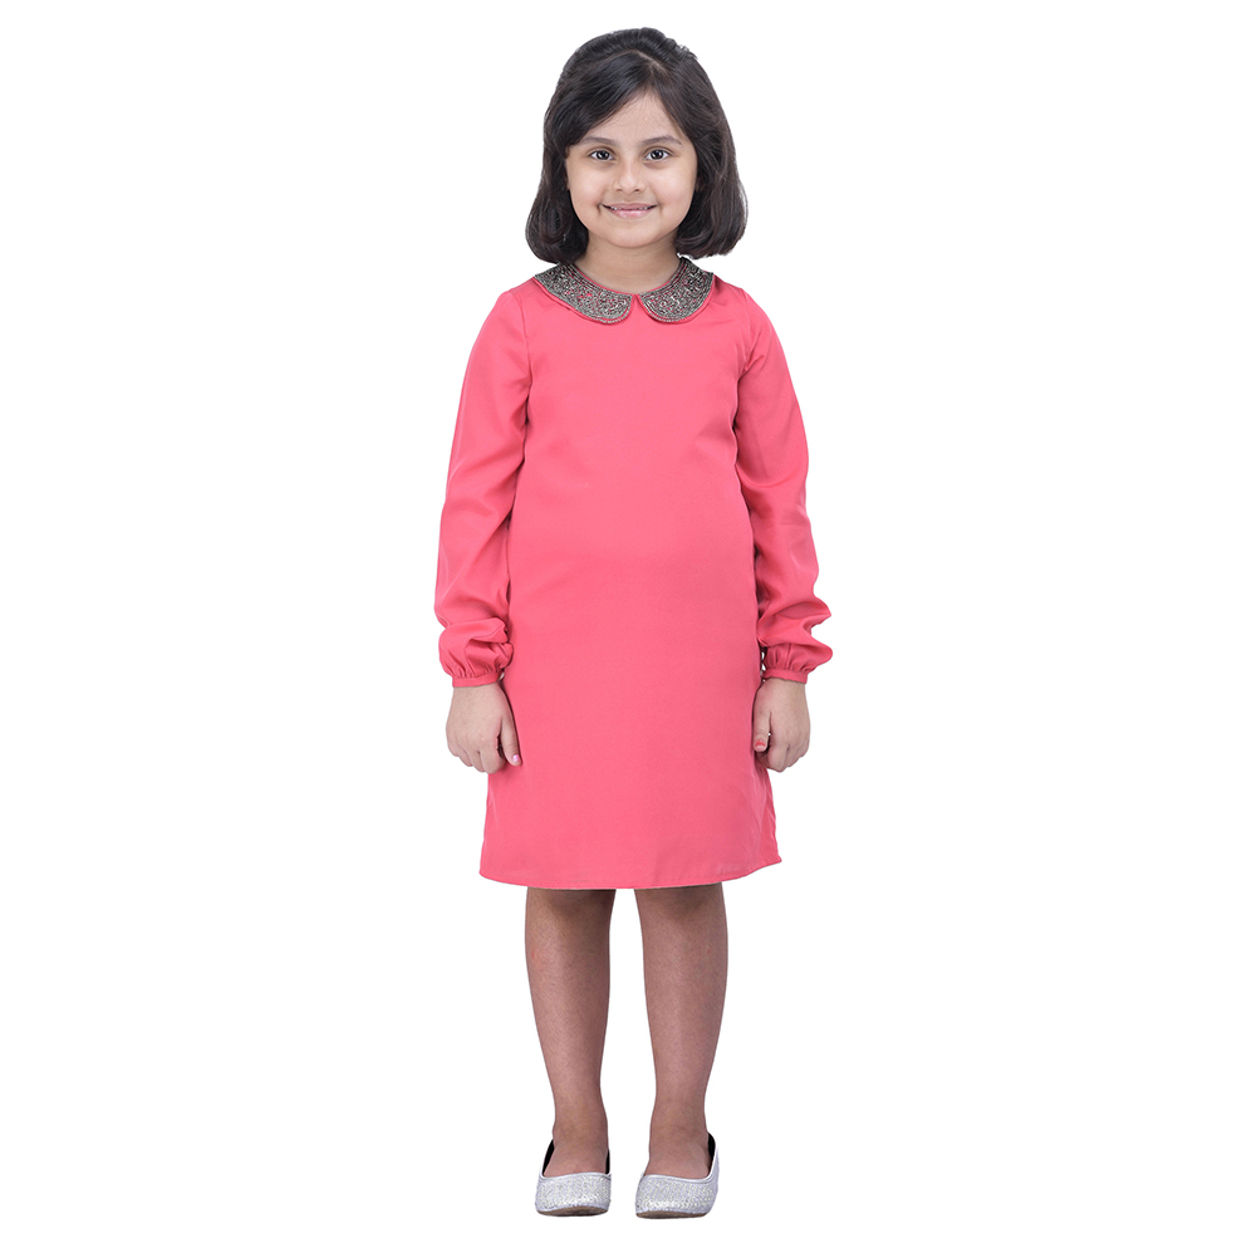 Girls Pink Party Dress | W16125gdr003